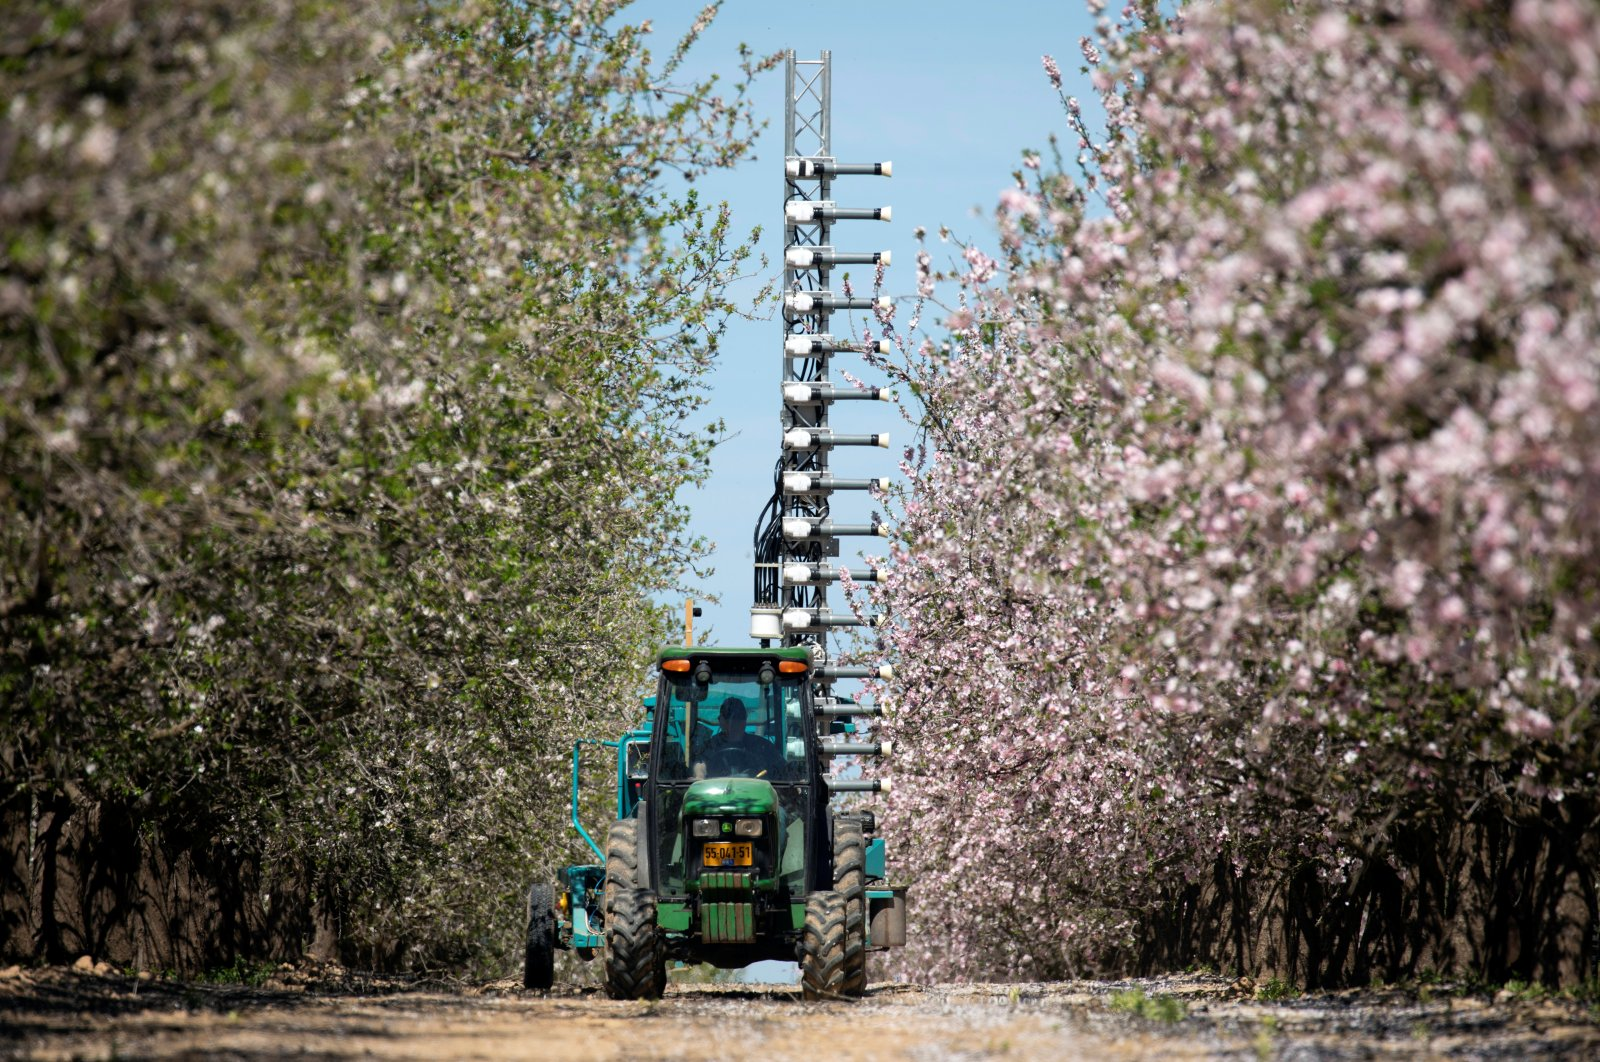 A tractor pulls a mast equipped with small cannons that shoot pollen at almond trees, allowing them to be fertilized without bees, Tel Arad, southern Israel, March 4, 2020. (Reuters Photo)